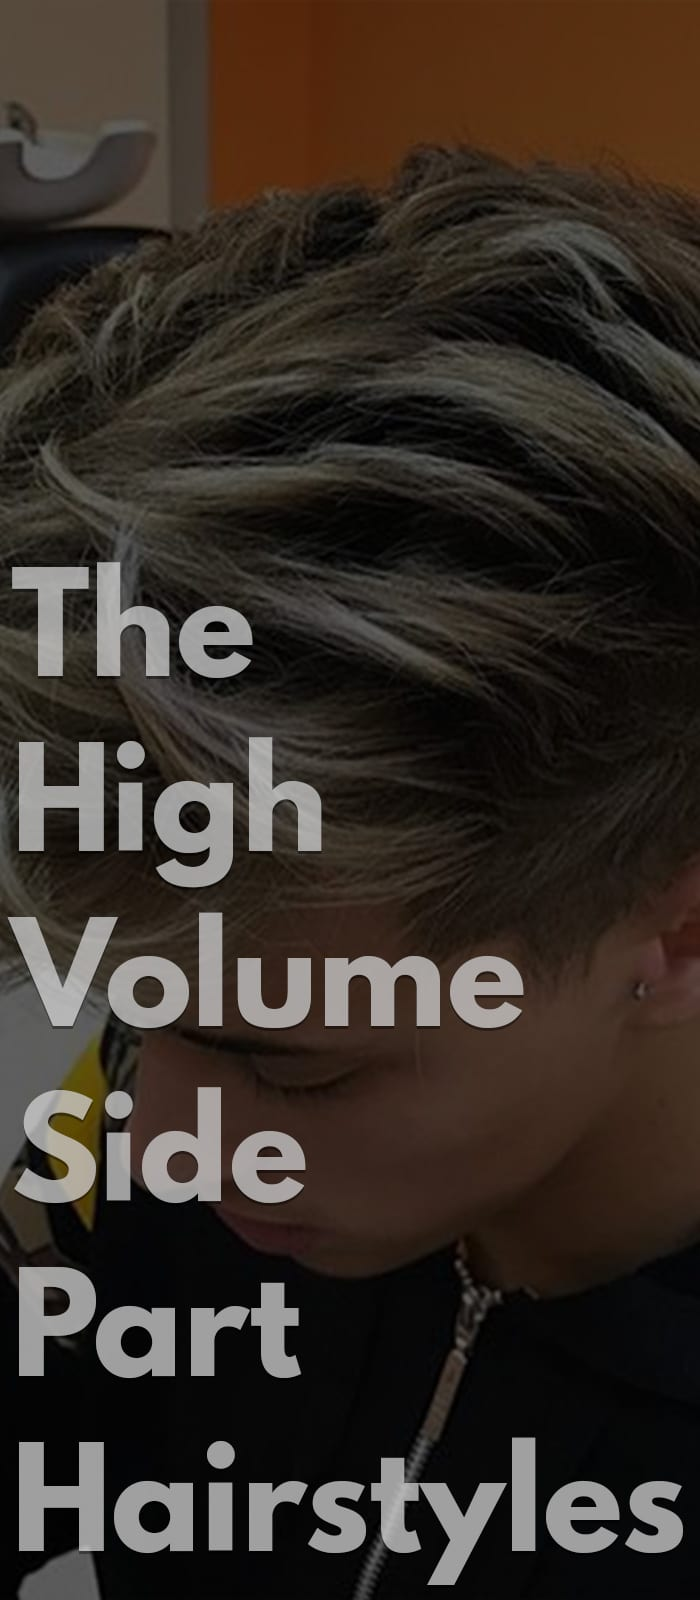 The High Volume Side Part Hairstyles